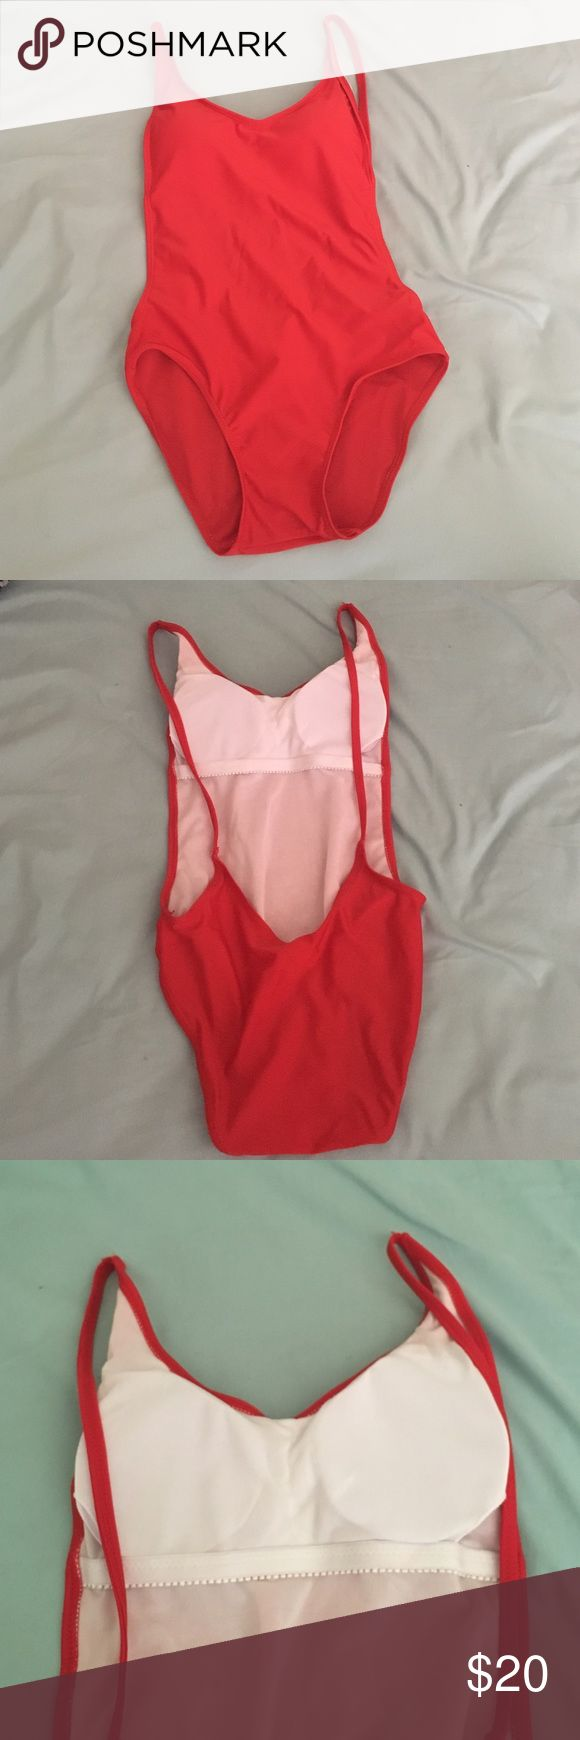 Red Open Back Bathing Suit This is a beautiful, new bathing suit. It's a reposh it unfortunately doesn't fit me. Just trying to get my money back! It's a beautiful red color, think Baywatch-type bathing suit. I've only tried this on while wearing underwear, really wish it would fit me. Last picture is a similar style. Swim One Pieces